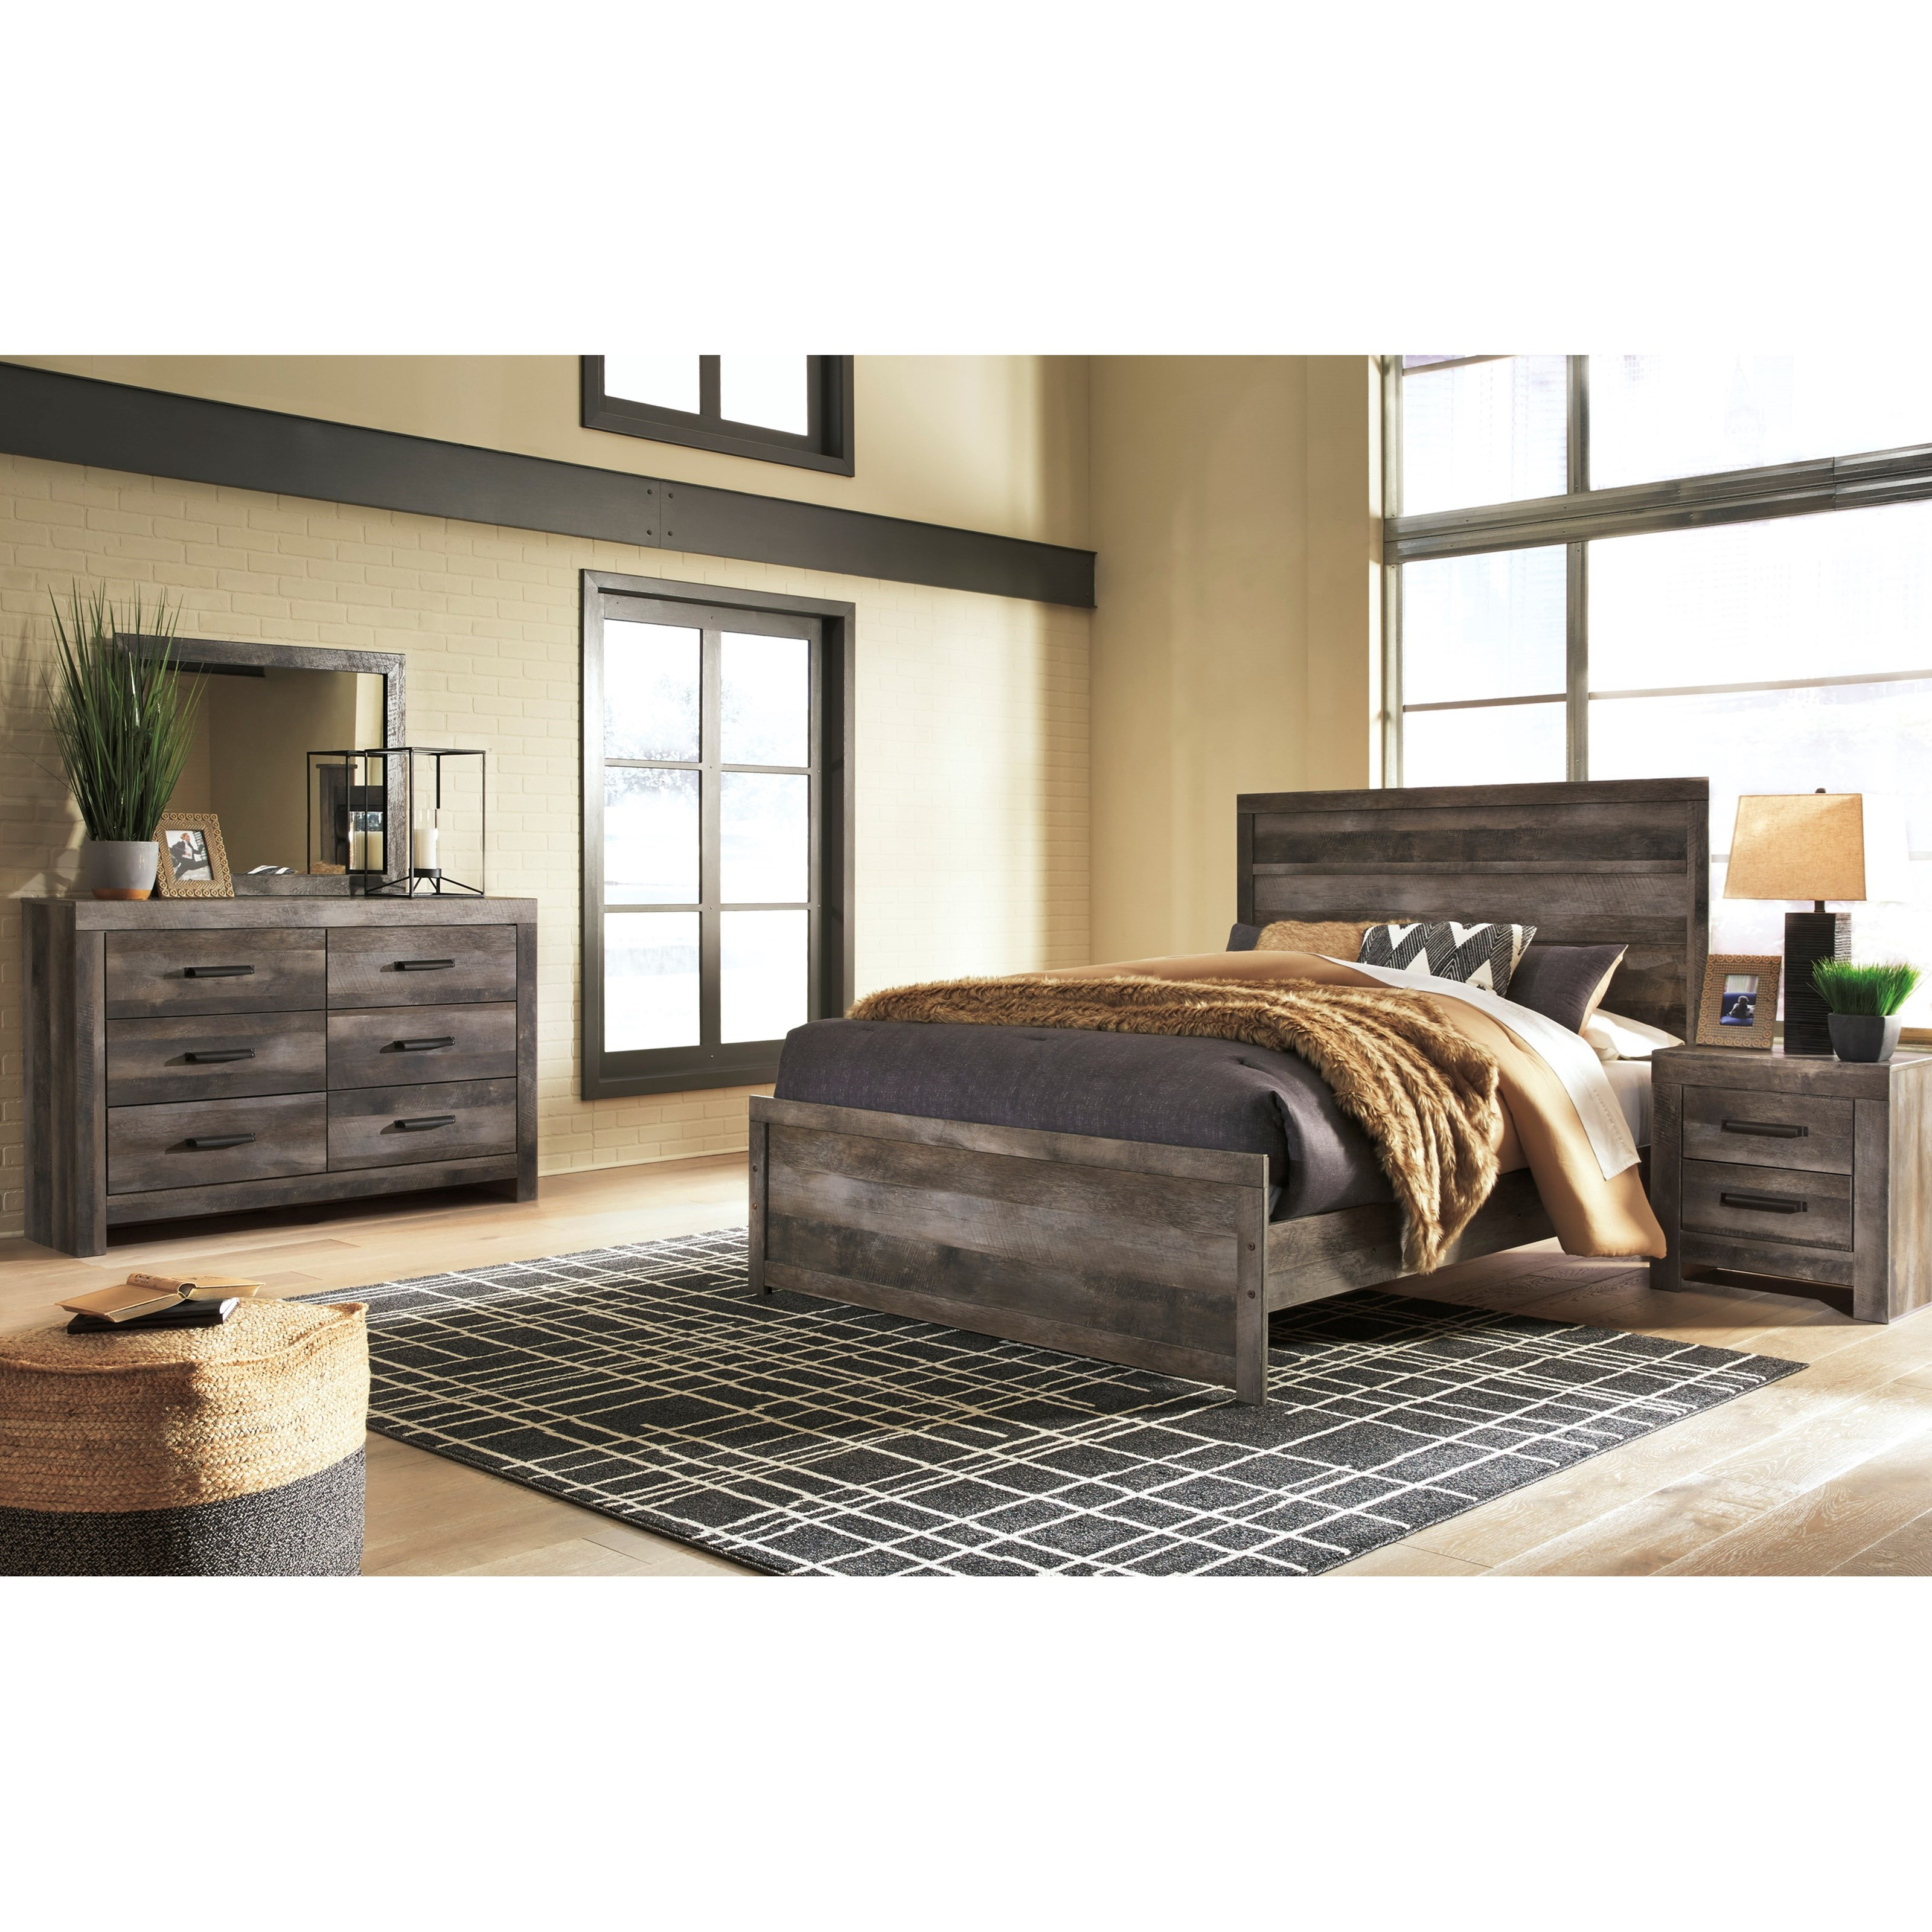 Wynnlow Queen Bedroom Group by Signature Design by Ashley at Furniture Barn